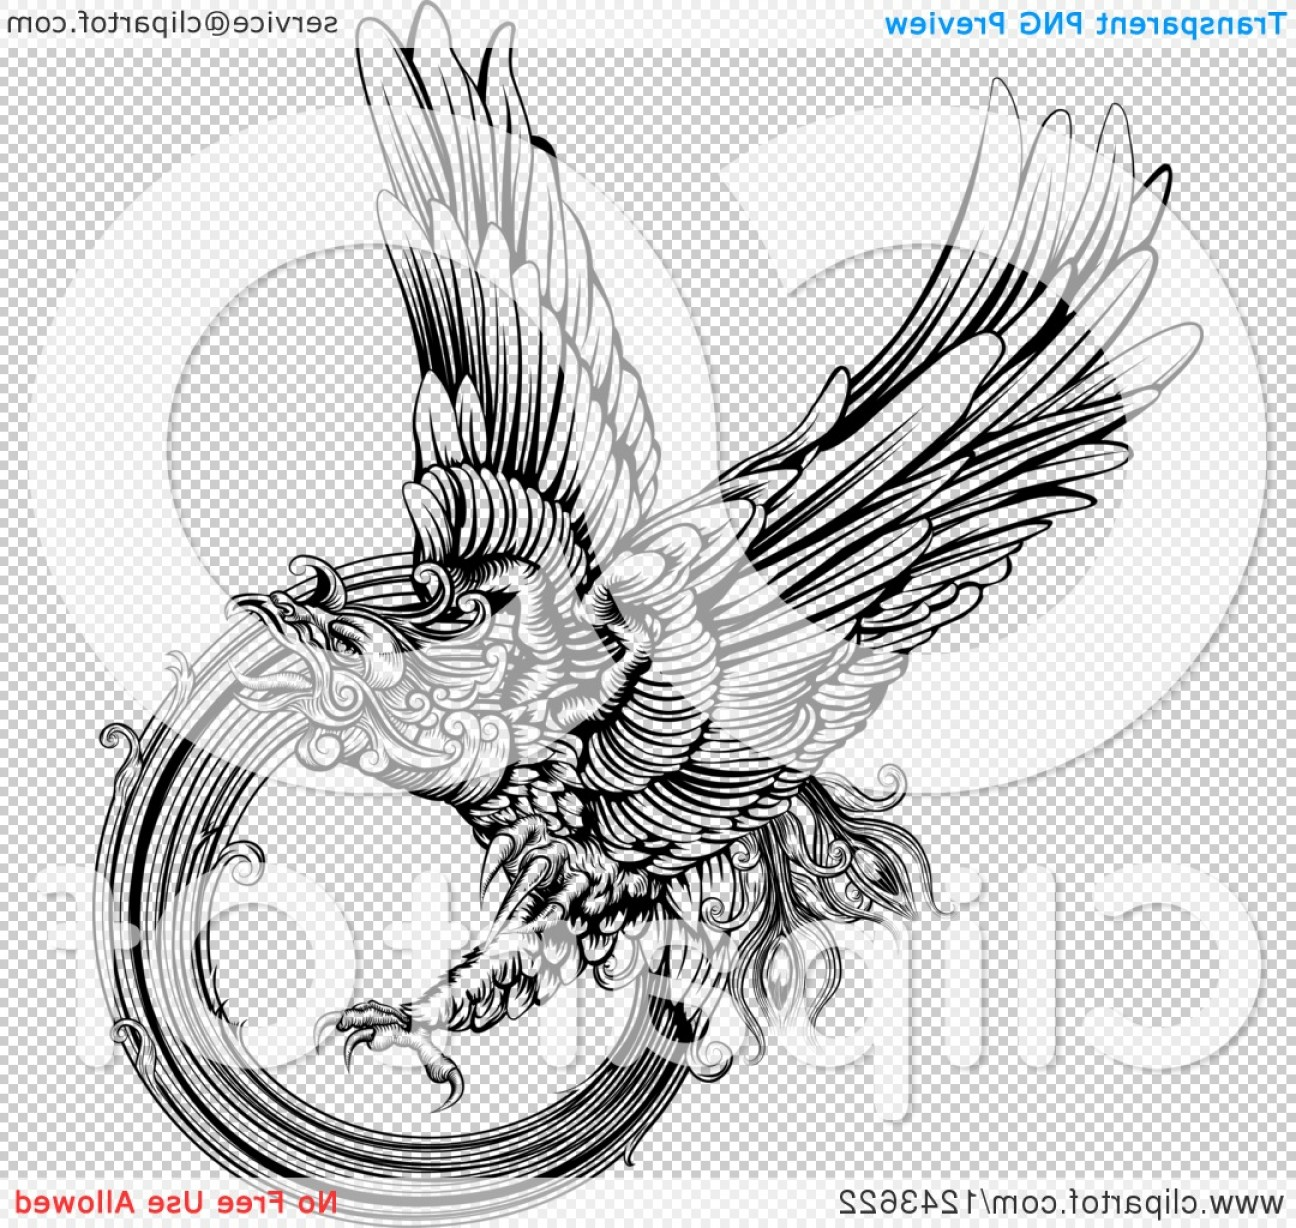 Firebird Vector Transparent Background: Black And White Engraved Majestic Phoenix Bird Flying